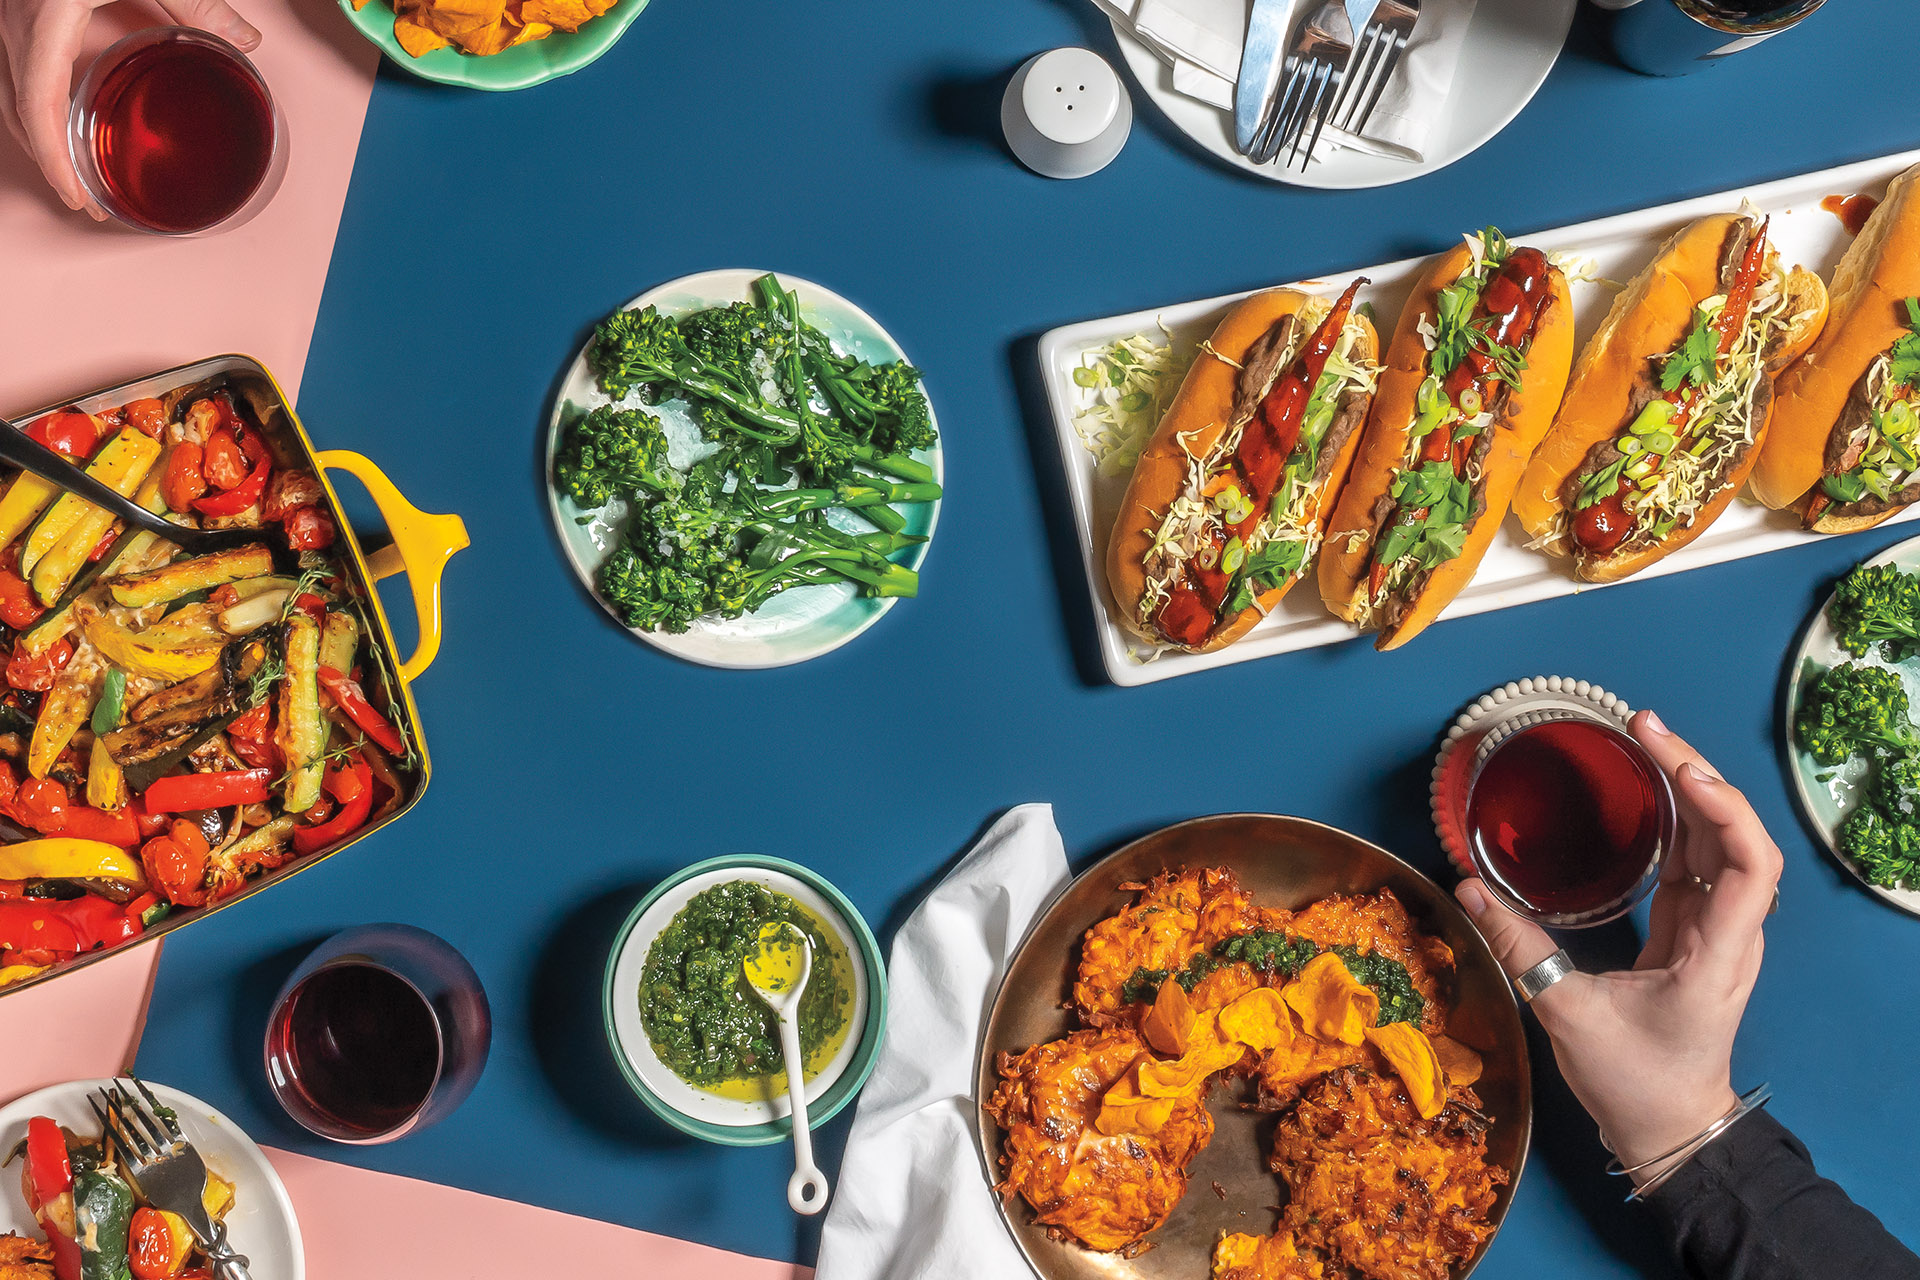 Three Vegetarian Recipes for Meatless Meals